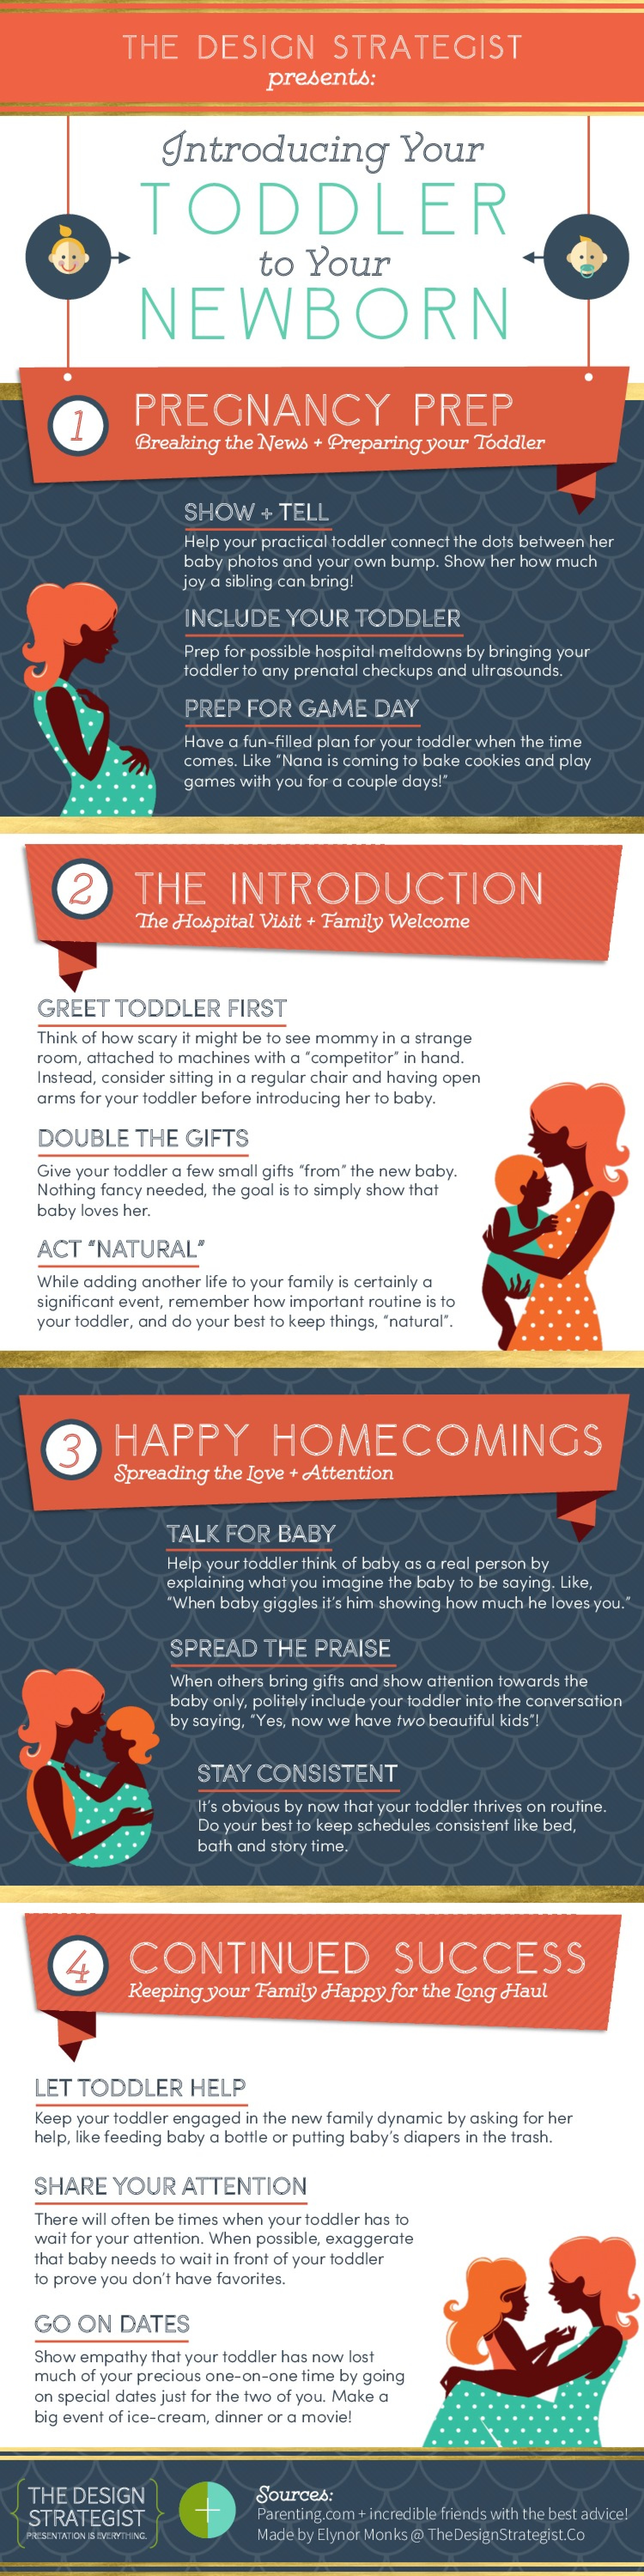 Introducing Your Toddler to Your Newborn Infographic